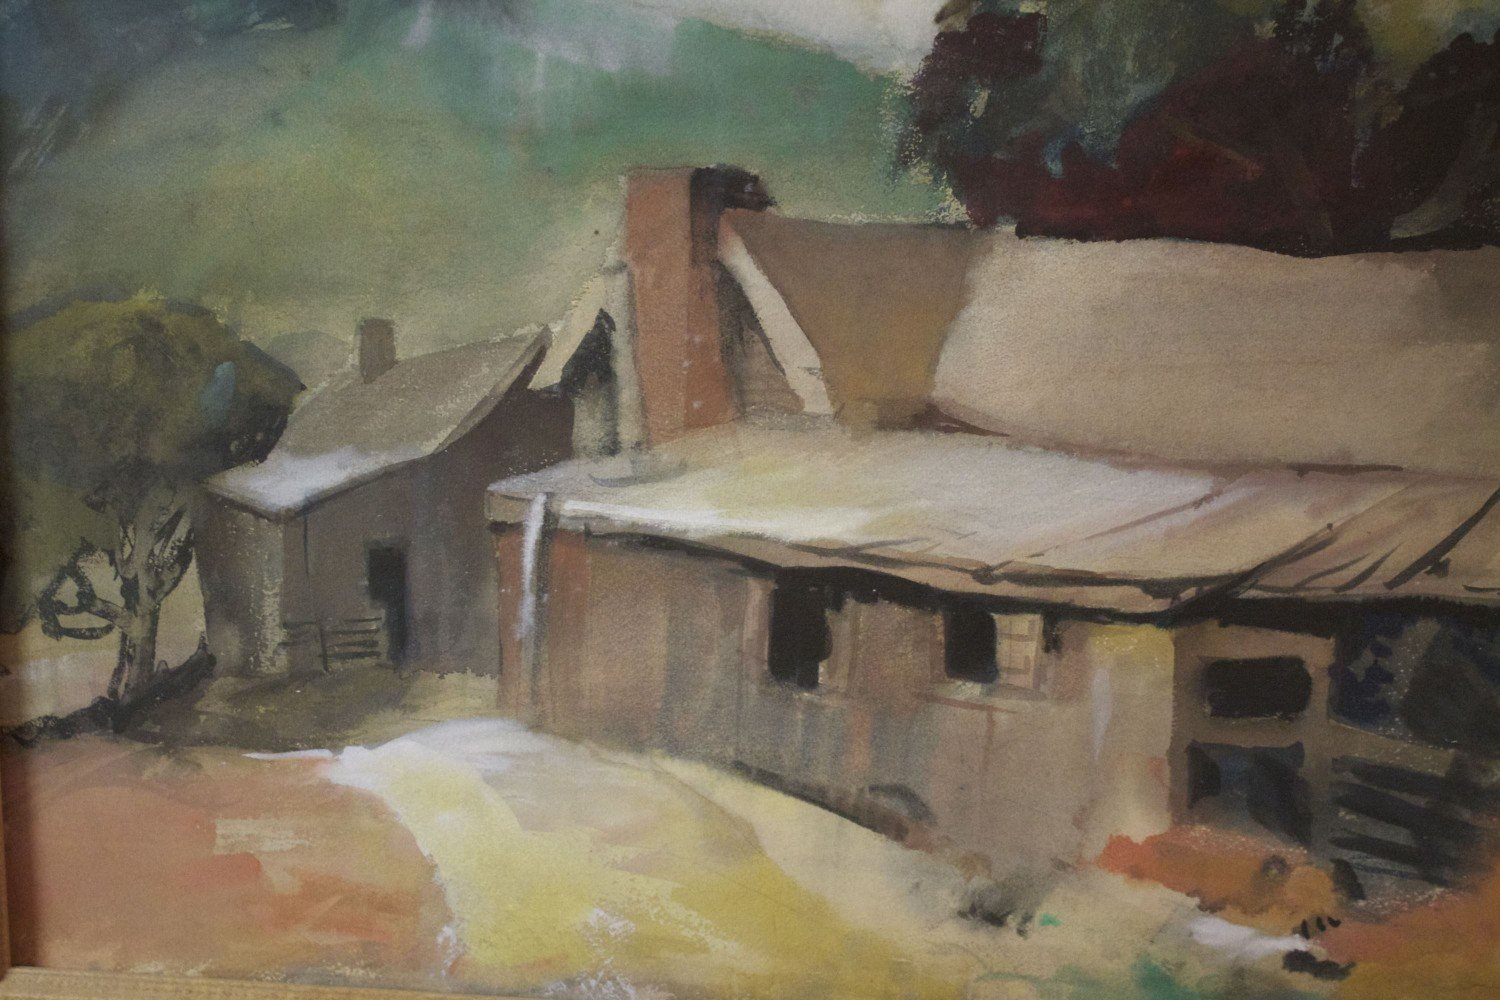 Gärtner carl frederick gaertner barn buildings collection wolfs paintings and sculpture